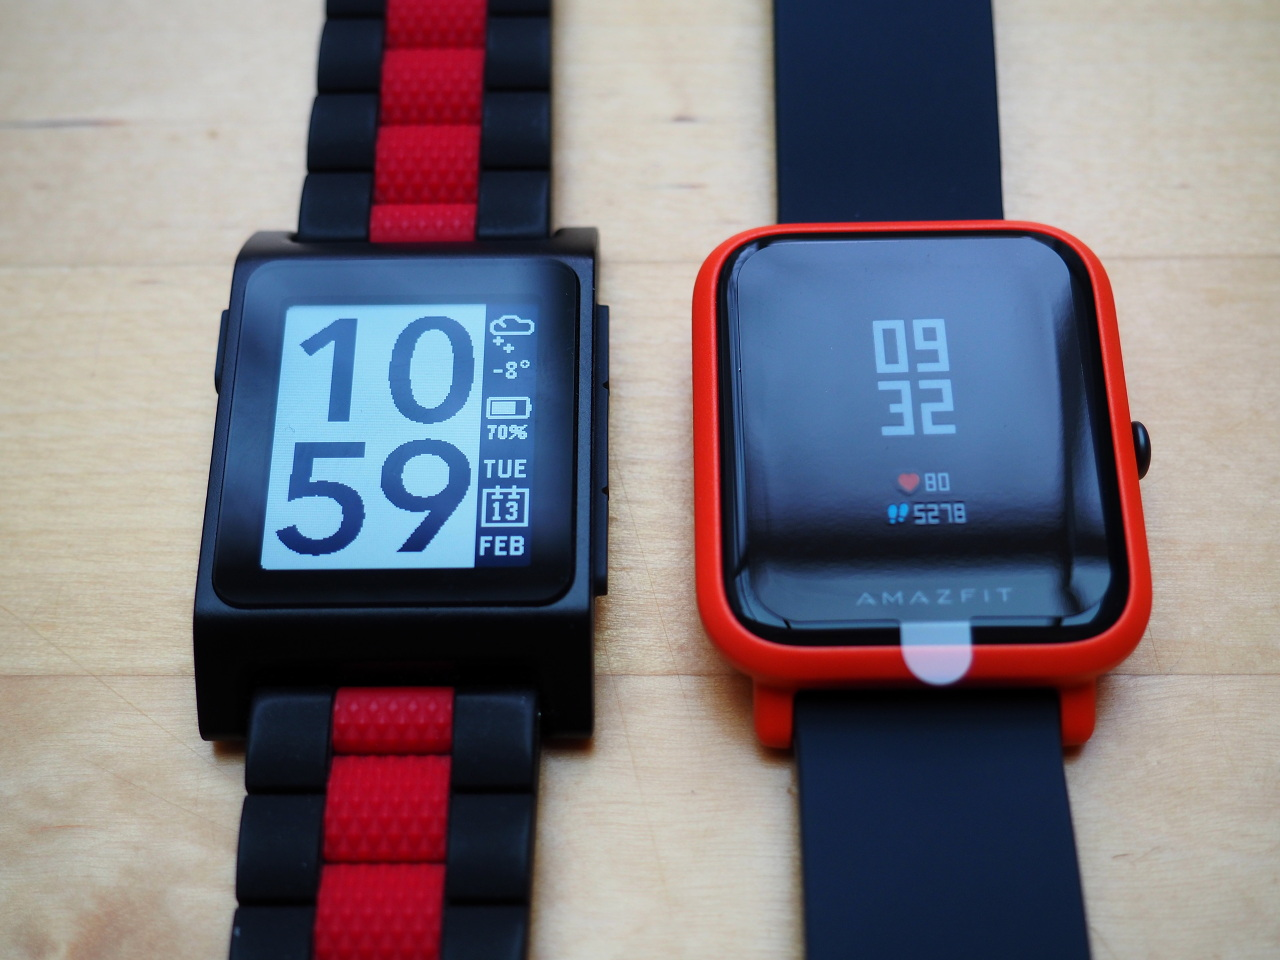 Amazfit Bip: Not Quite the Pebble Replacement You Were